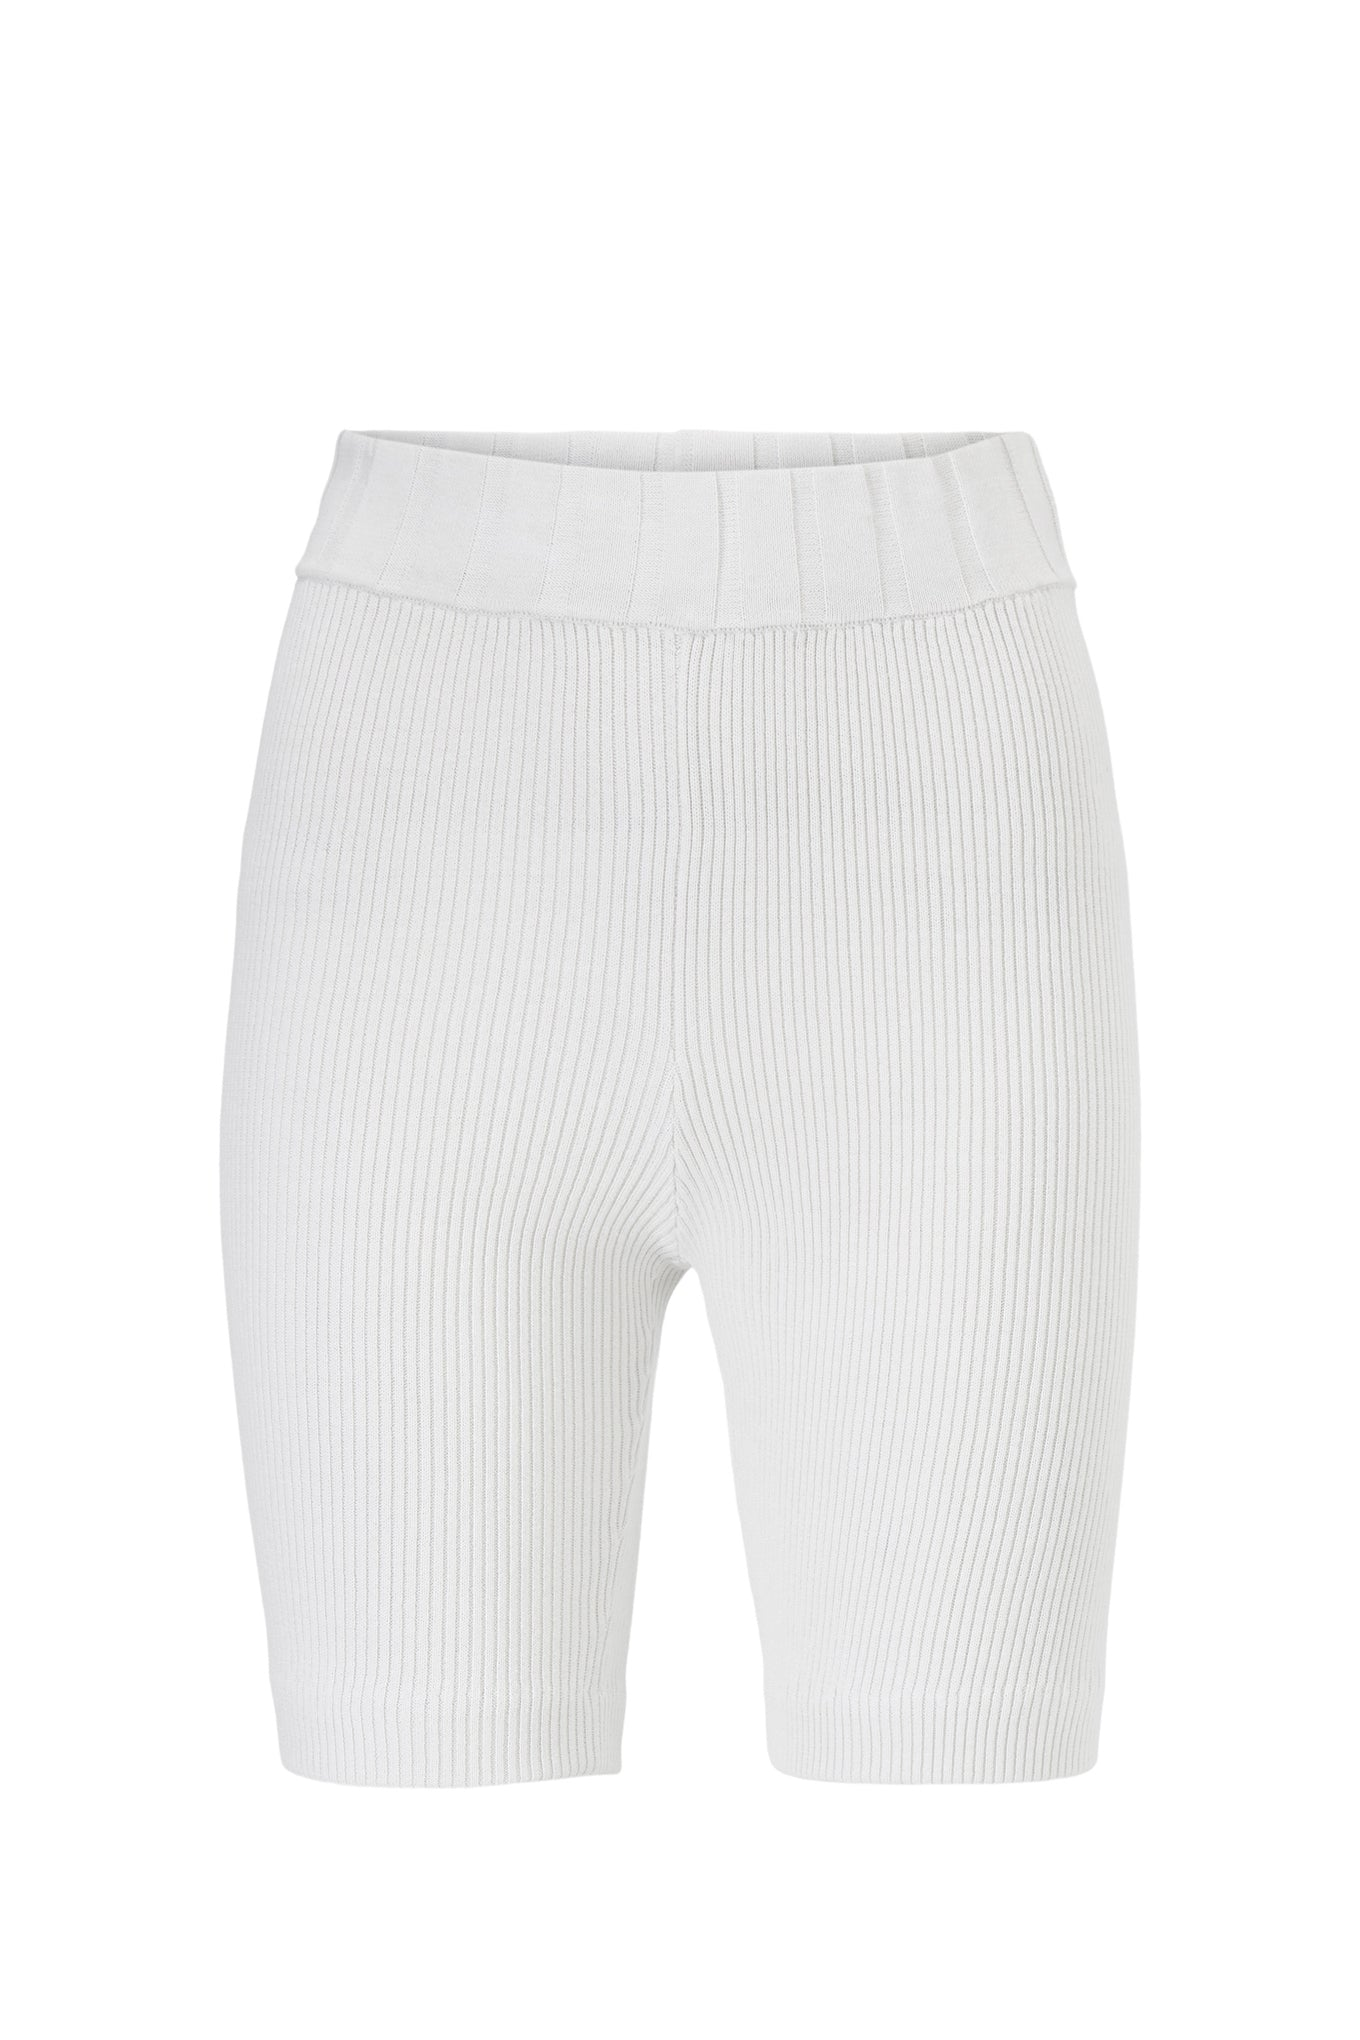 NIXON KNIT SHORTS - WHITE - SILK/COTTON